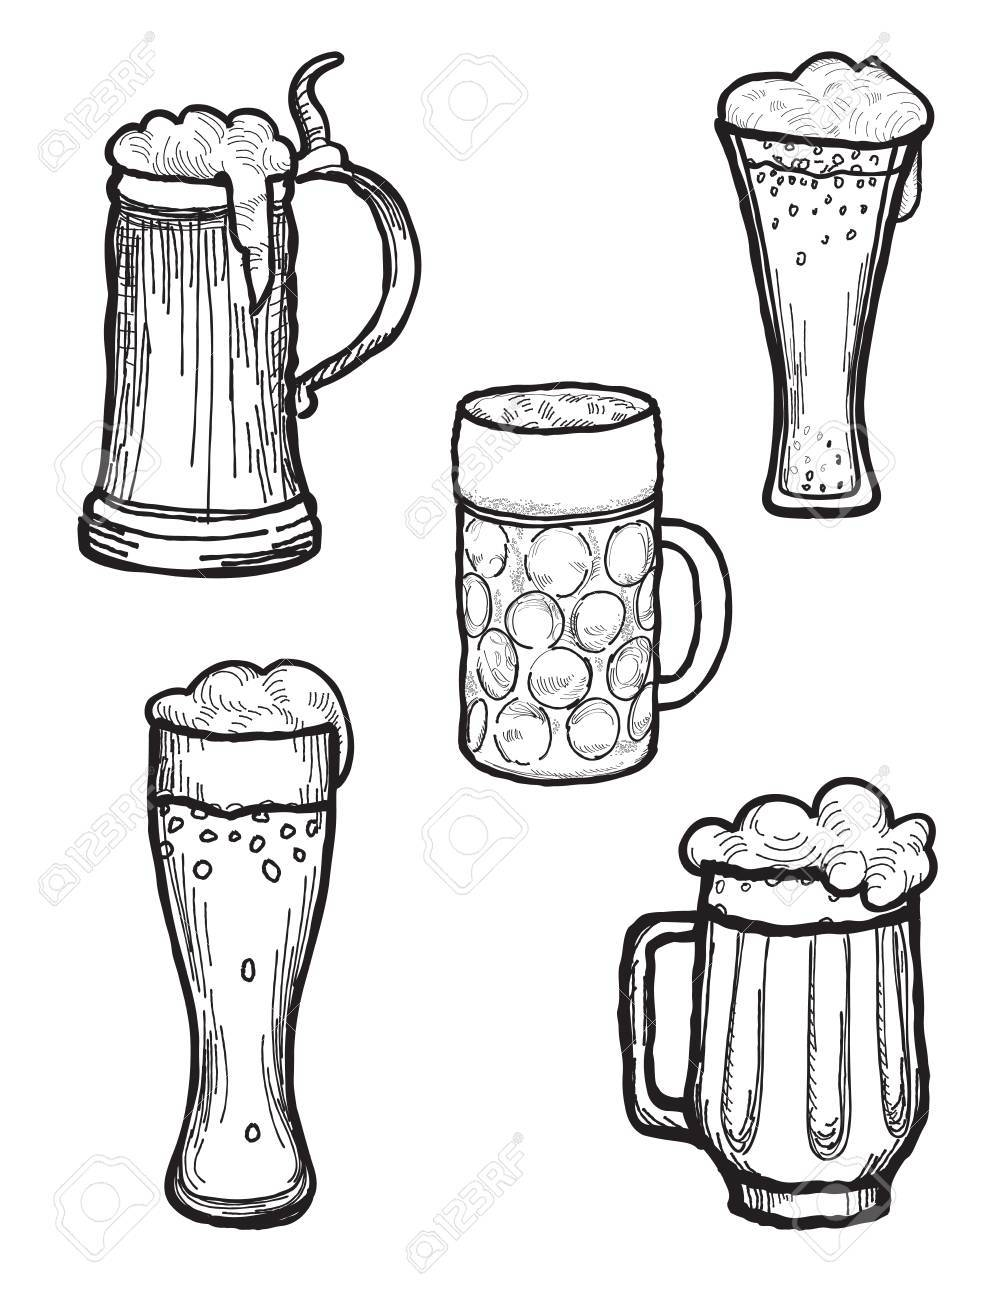 Beer Ware Set In Retro Style Beer Mug And Beer Glass Silhouette Doodle Engraved Collection Royalty Free Cliparts Vetores E Ilustracoes Stock Image 71028269